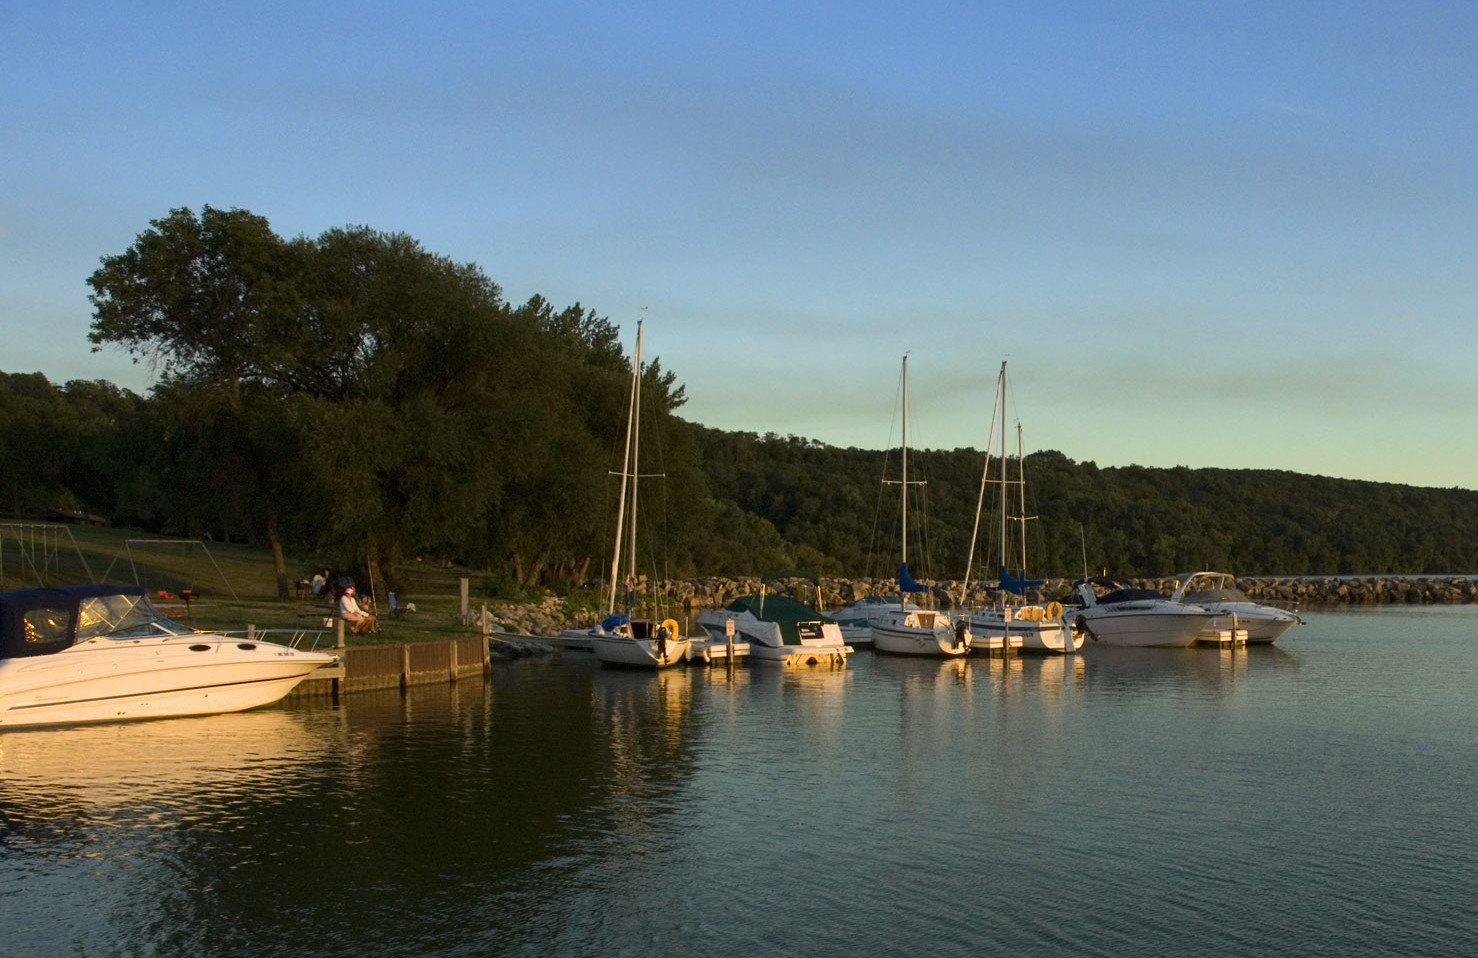 Boats at the dock iat High Cliff State Park